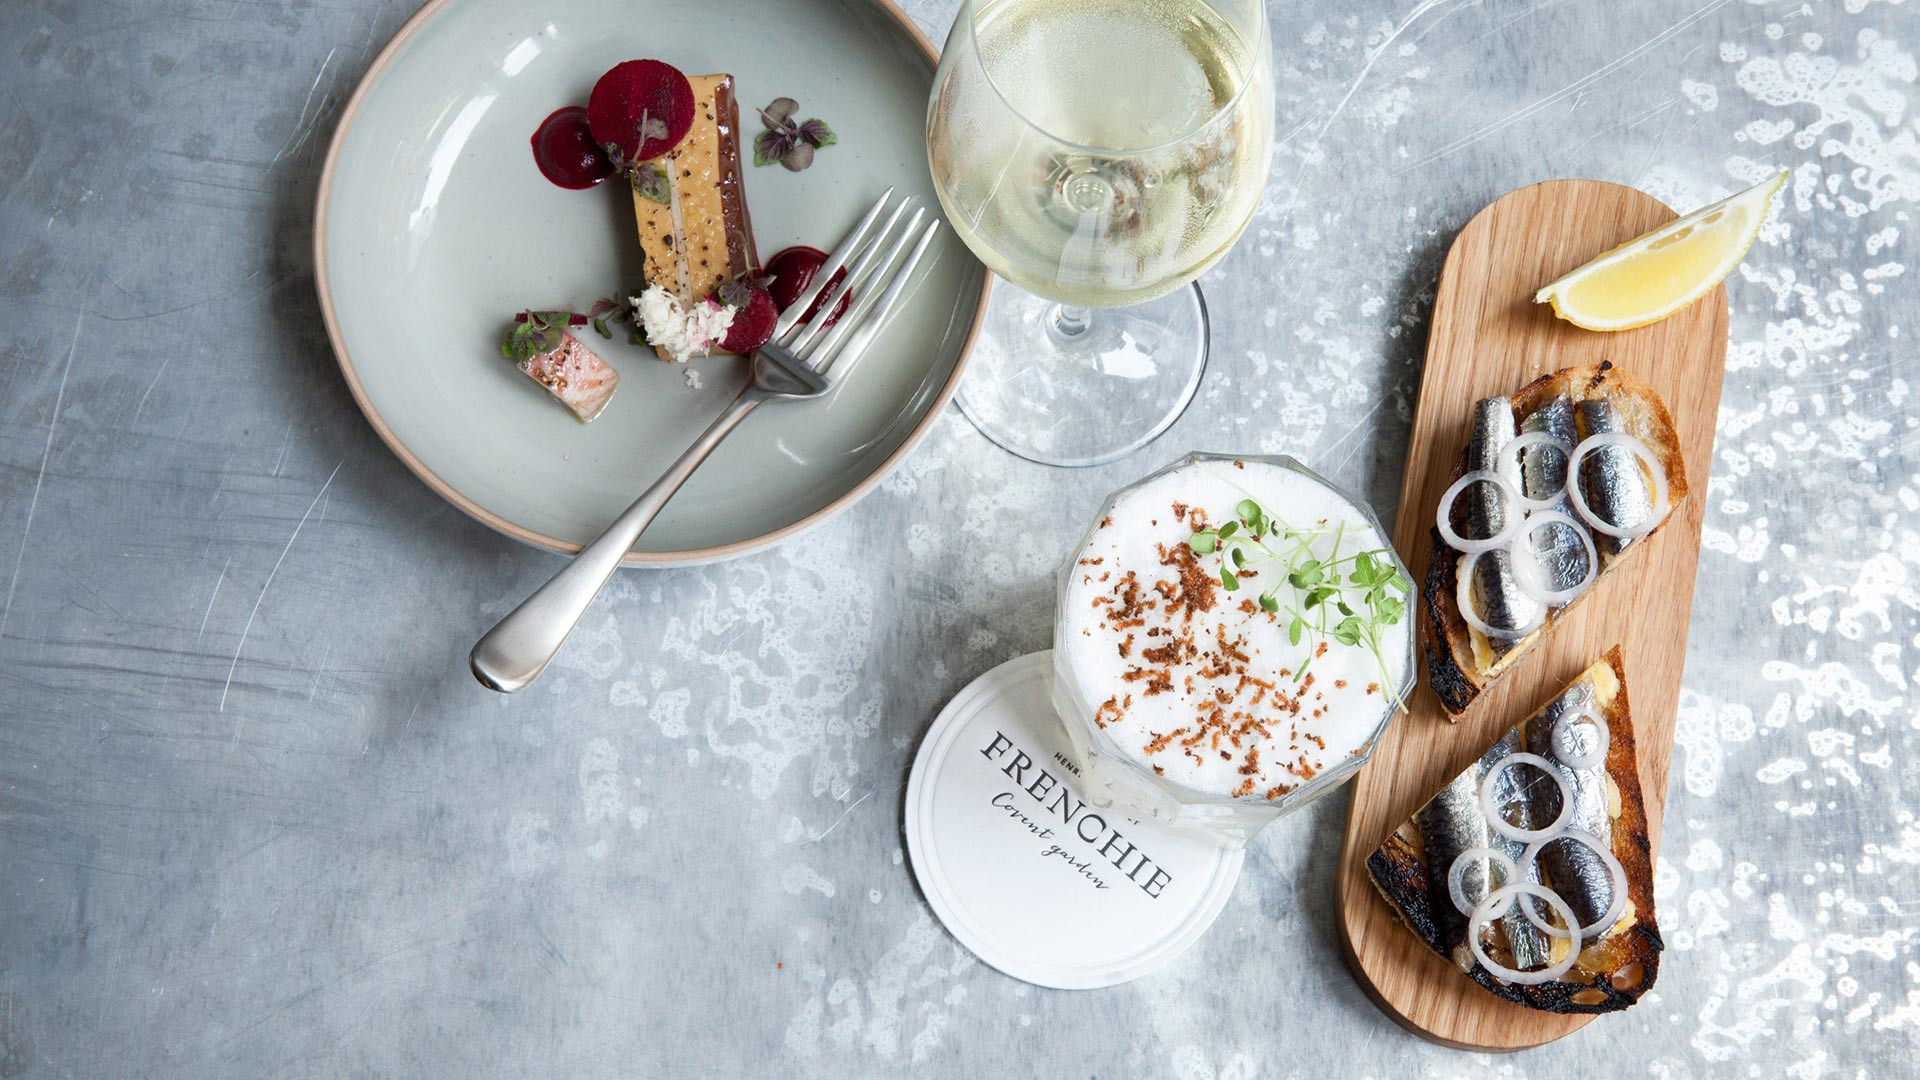 Frenchie's London outpost is bringing bistronomy to London